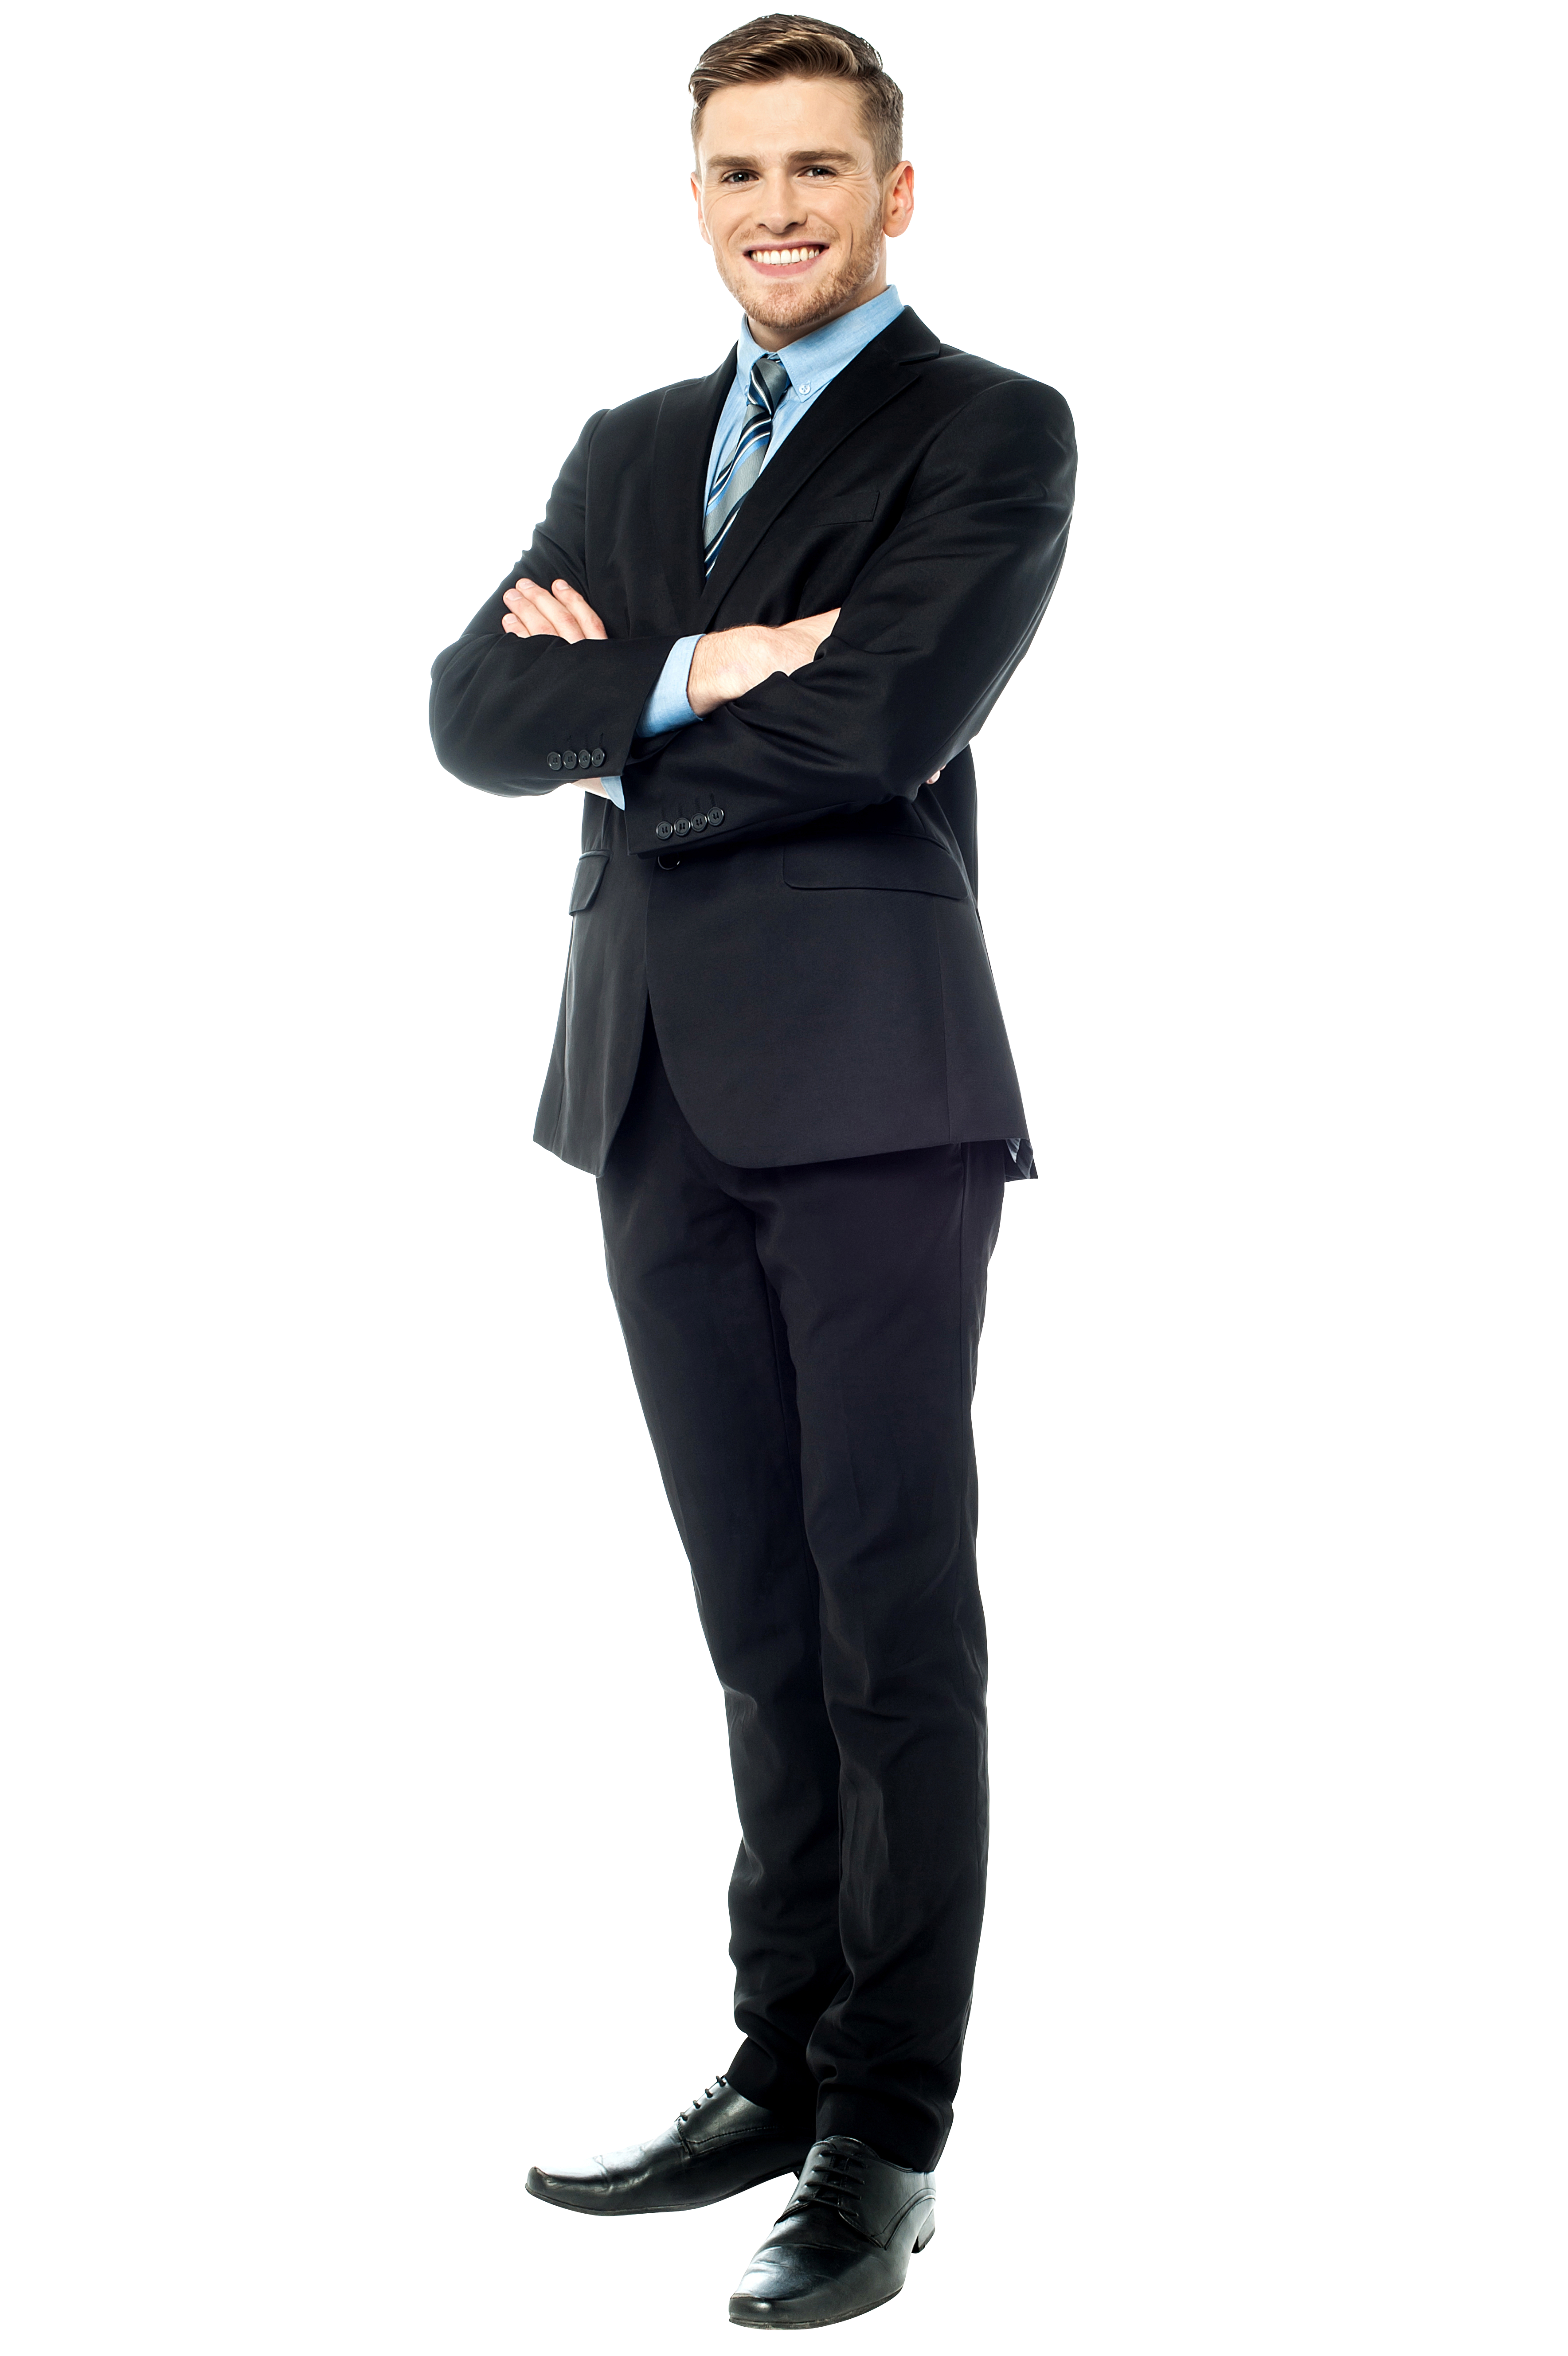 Men In Suit PNG Image.